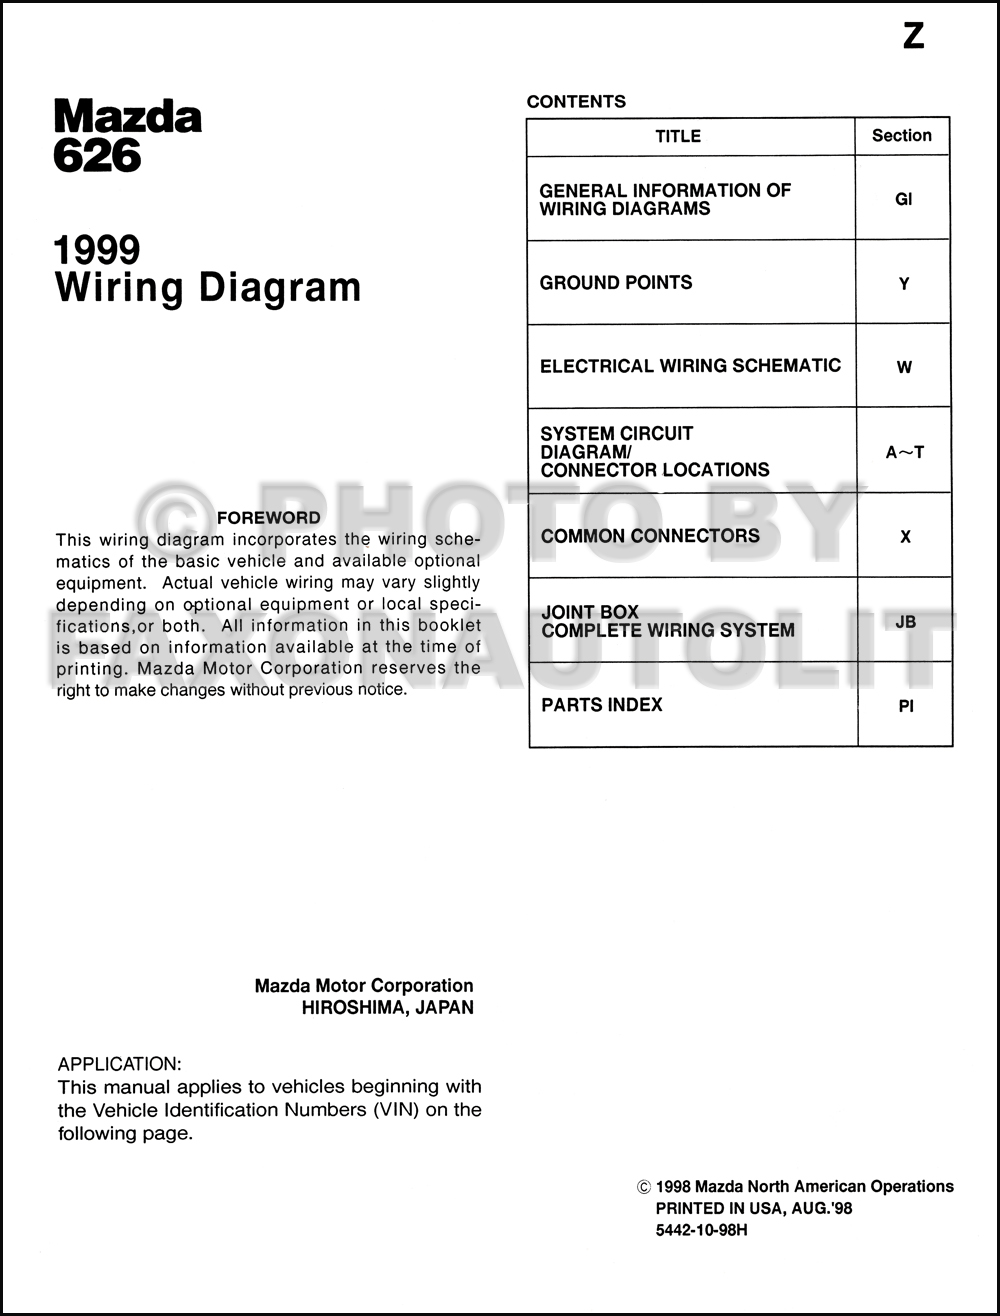 1999Mazda626OWD TOC 1999 mazda 626 wiring diagram manual original mazda 626 wiring diagram at aneh.co